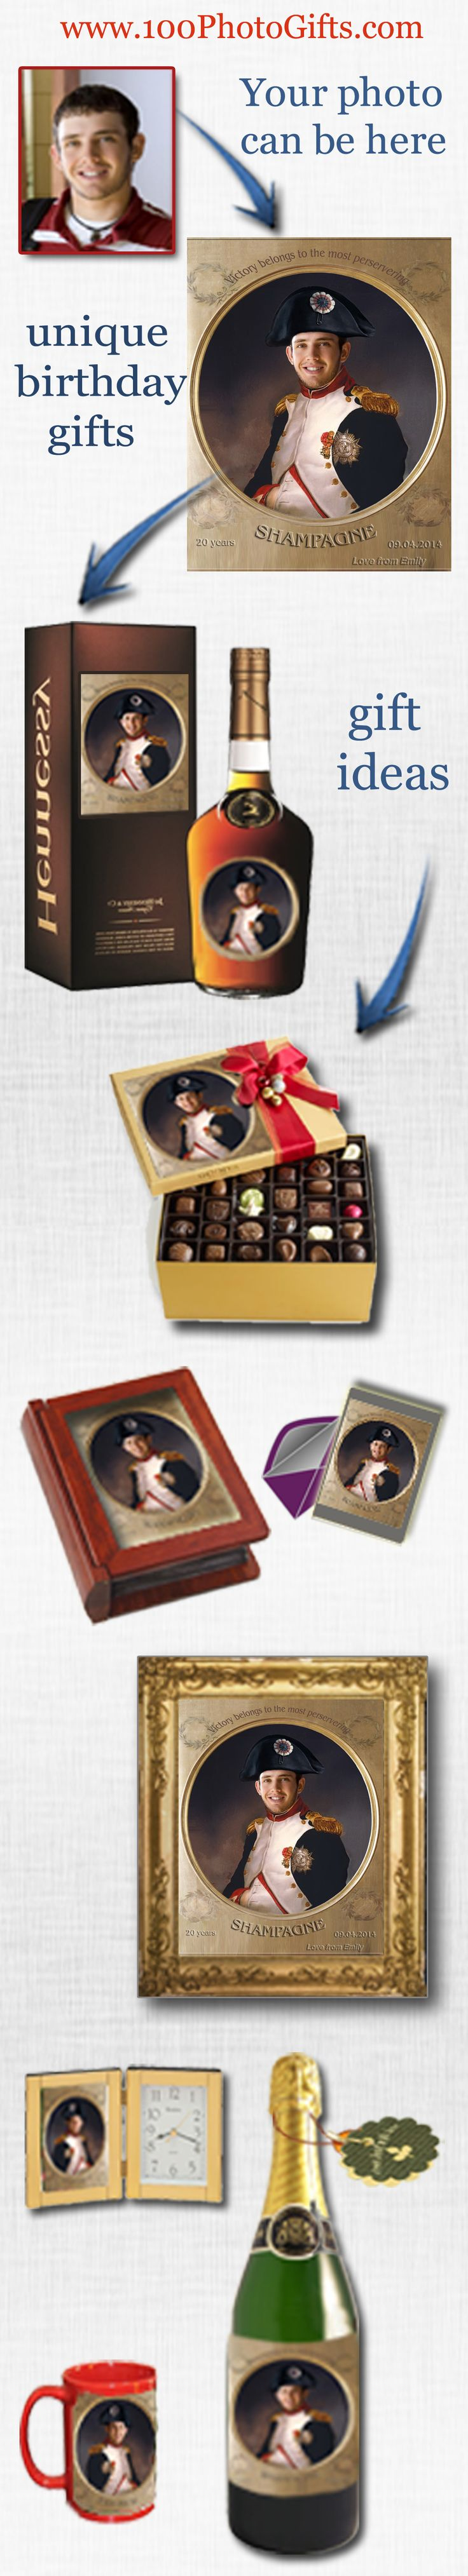 Best gifts for boyfriend or husband, brother, son and even boss. Sent us your photo and we will design unique picture for your loved one. Make your 21th, 25th, 30th, 40th anniversary gift unforgettable and cool. Personalized gifts, unique wine label, label on birthday champagne. Cheep gift ideas. Birthday gift ideas. Funny gifts, gifts for him, gifts for best friend, wine label invitations, champagne labels, best gifts for Boss birthday, gift ideas for best friends, gifts for 50th…